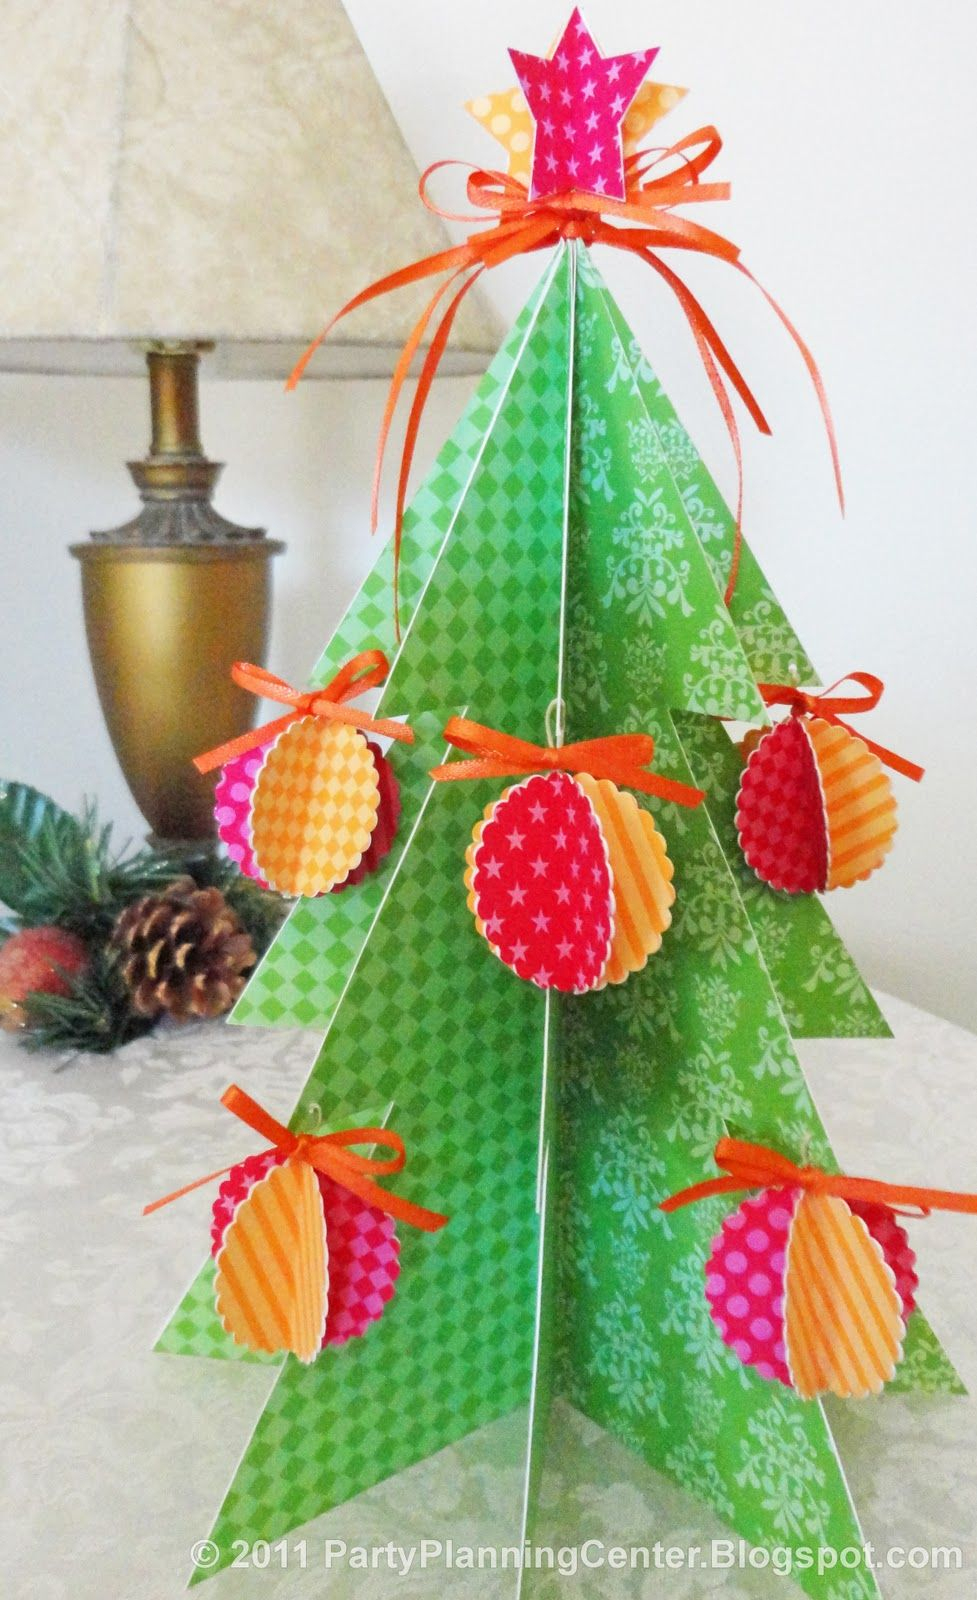 Party Planning Center: Free Printable Paper Christmas Tree And - Free Printable Christmas Ornament Crafts